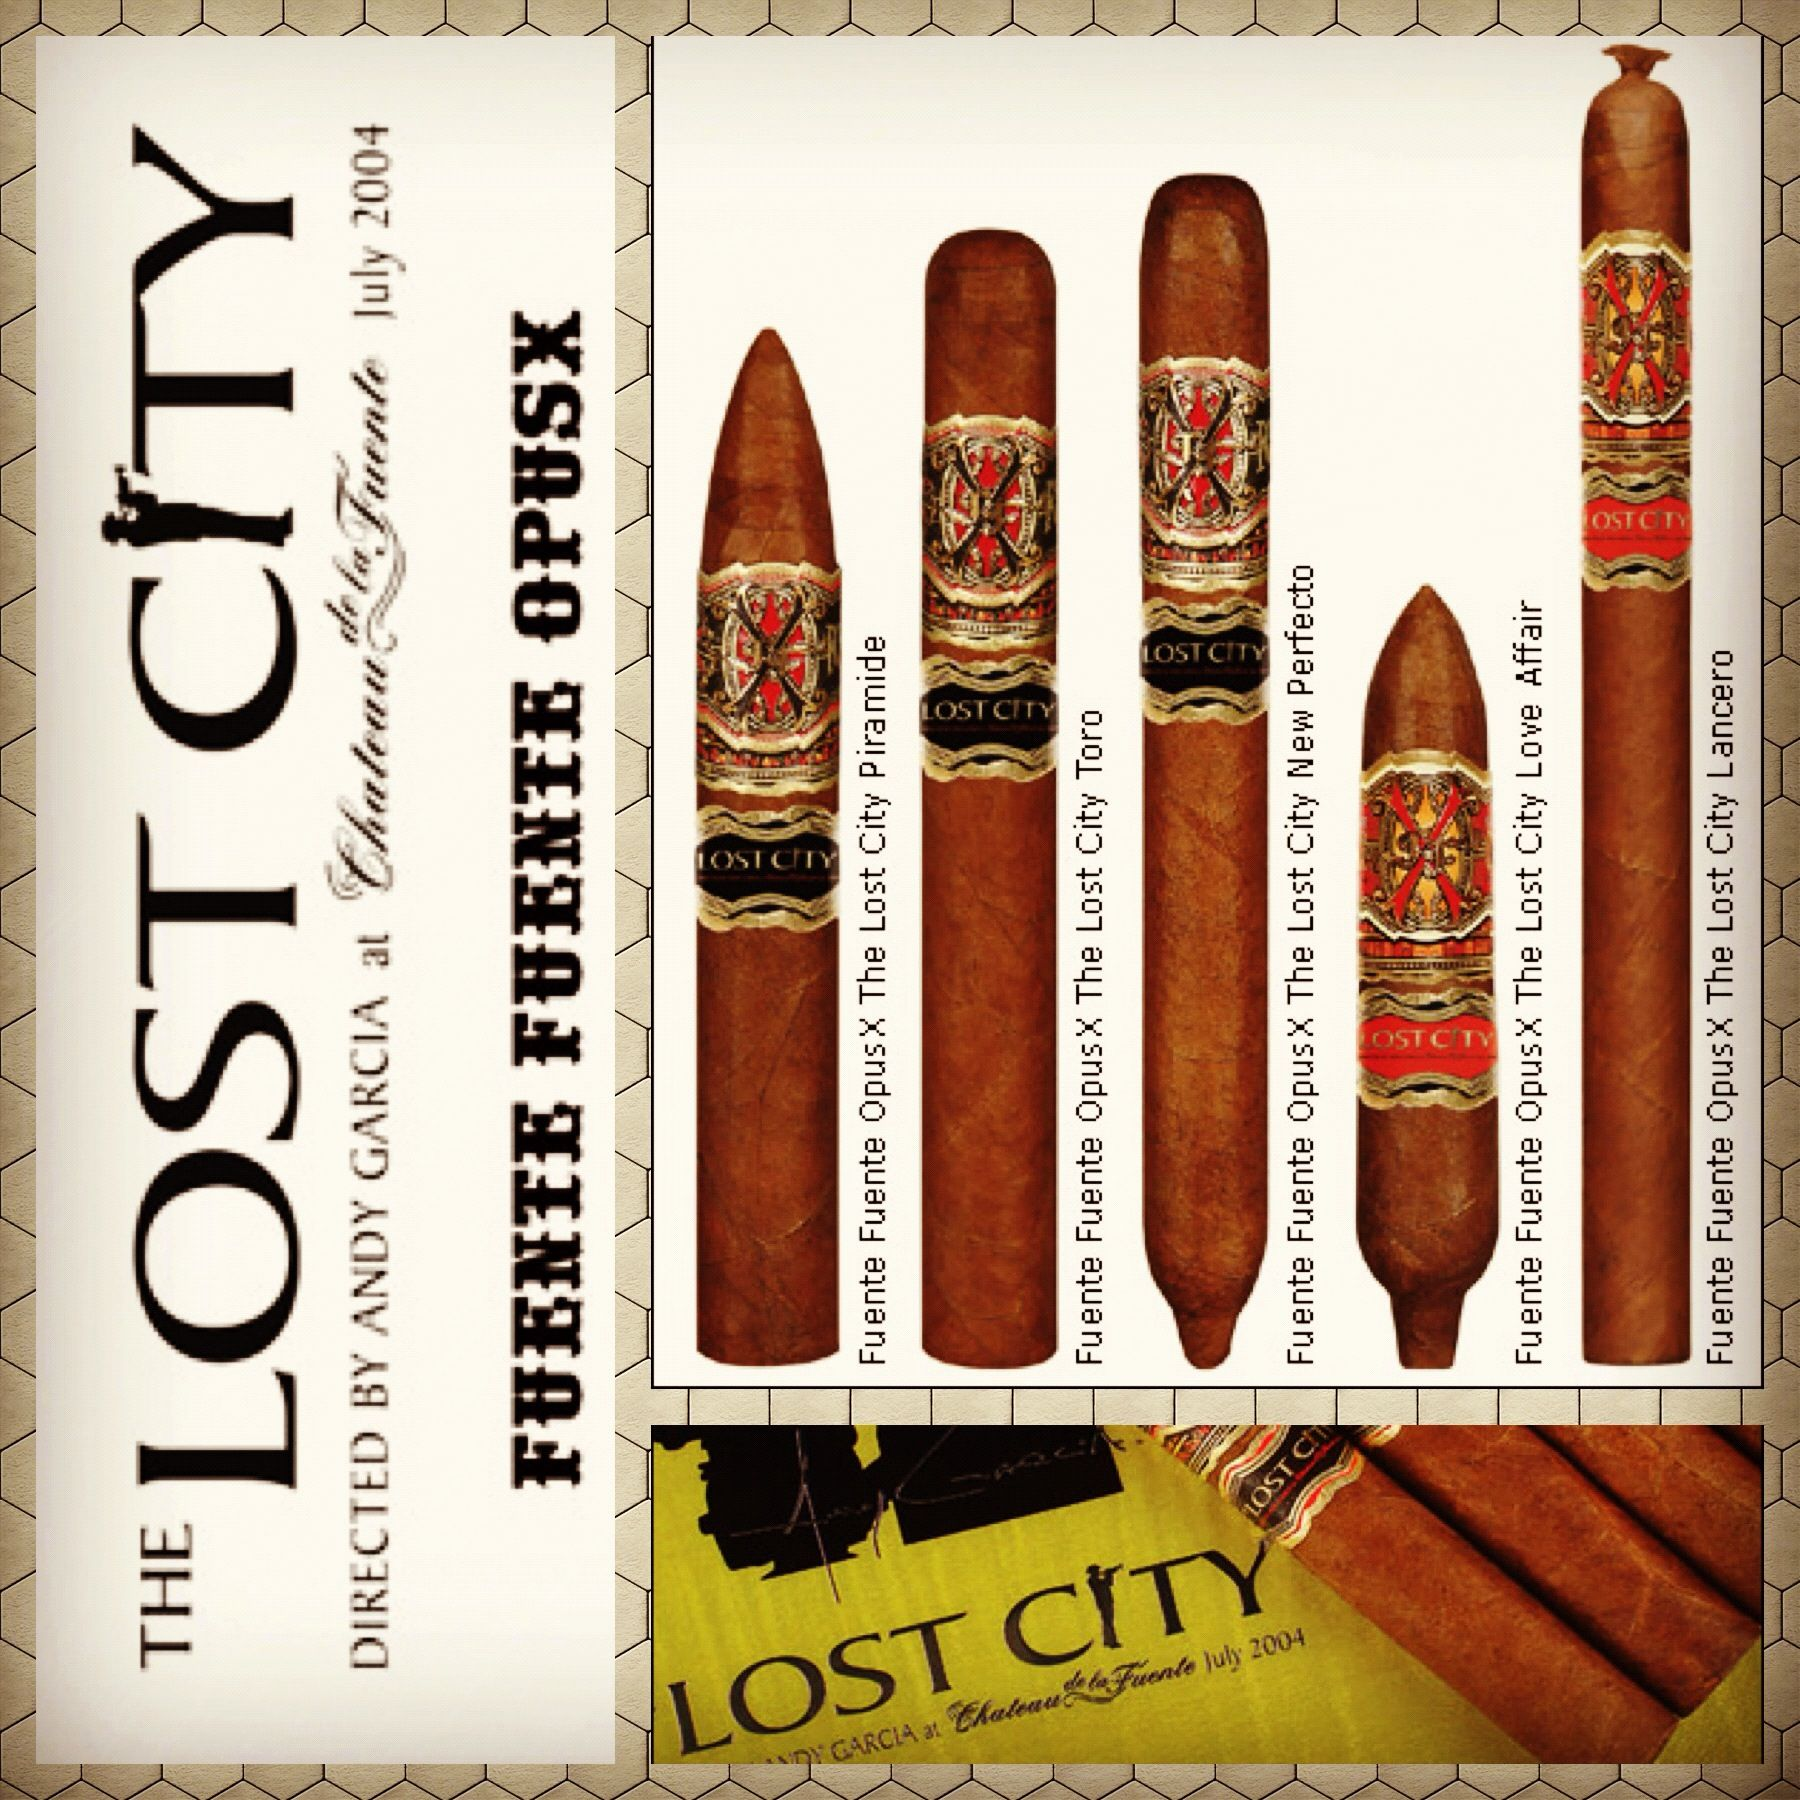 The Opus X Lost City Was Made With Rare Tobaccos Grown On Chateau De La Fuente This Puro Made With 100 Dominican Tobaccos Lost City Andy Garcia Hunting Girls